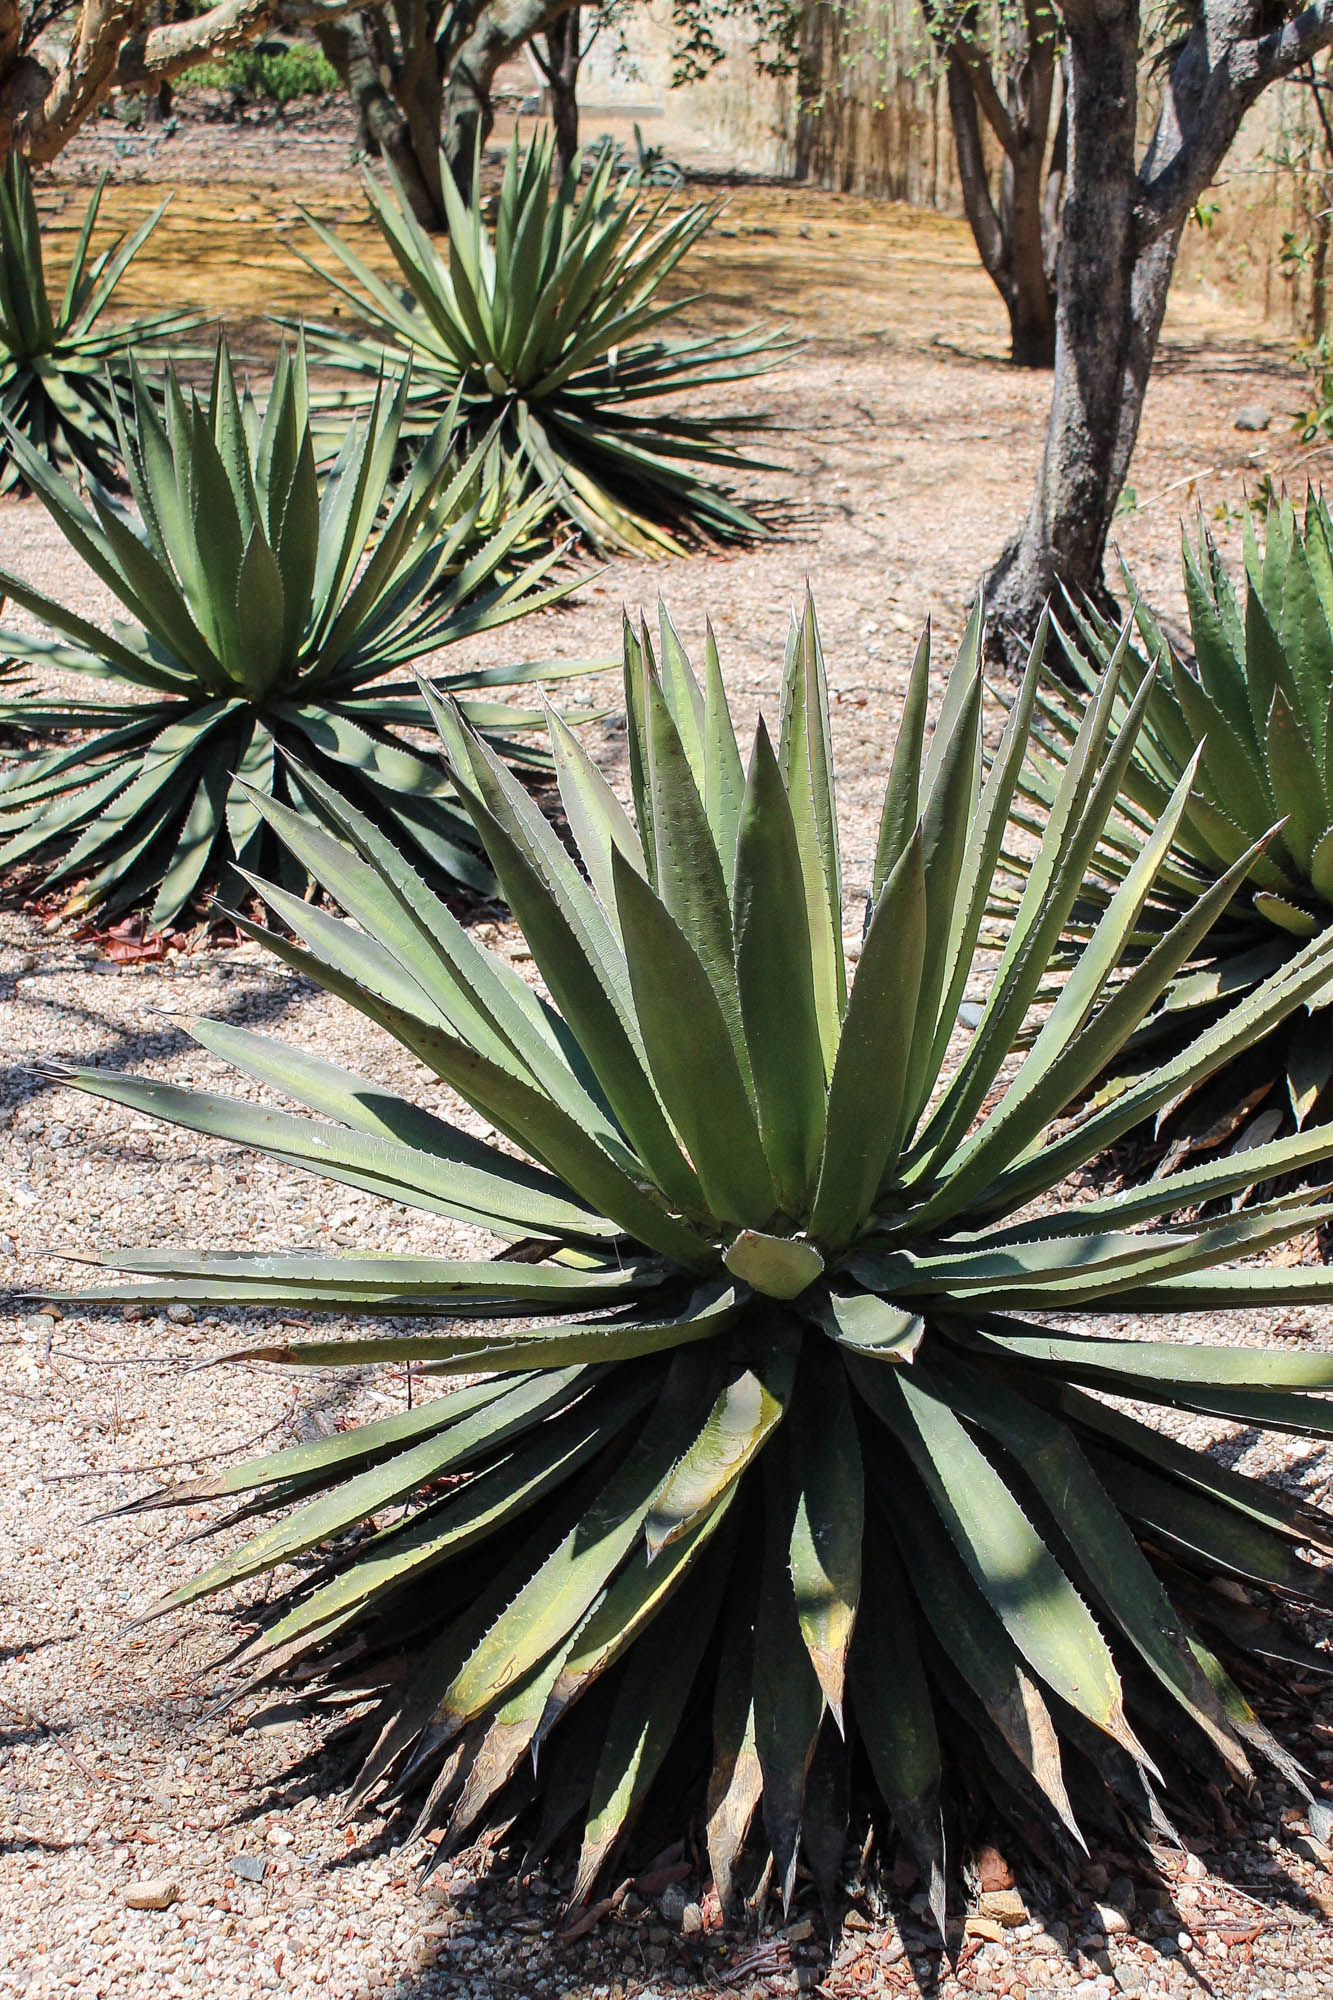 Agave (maguey) plant